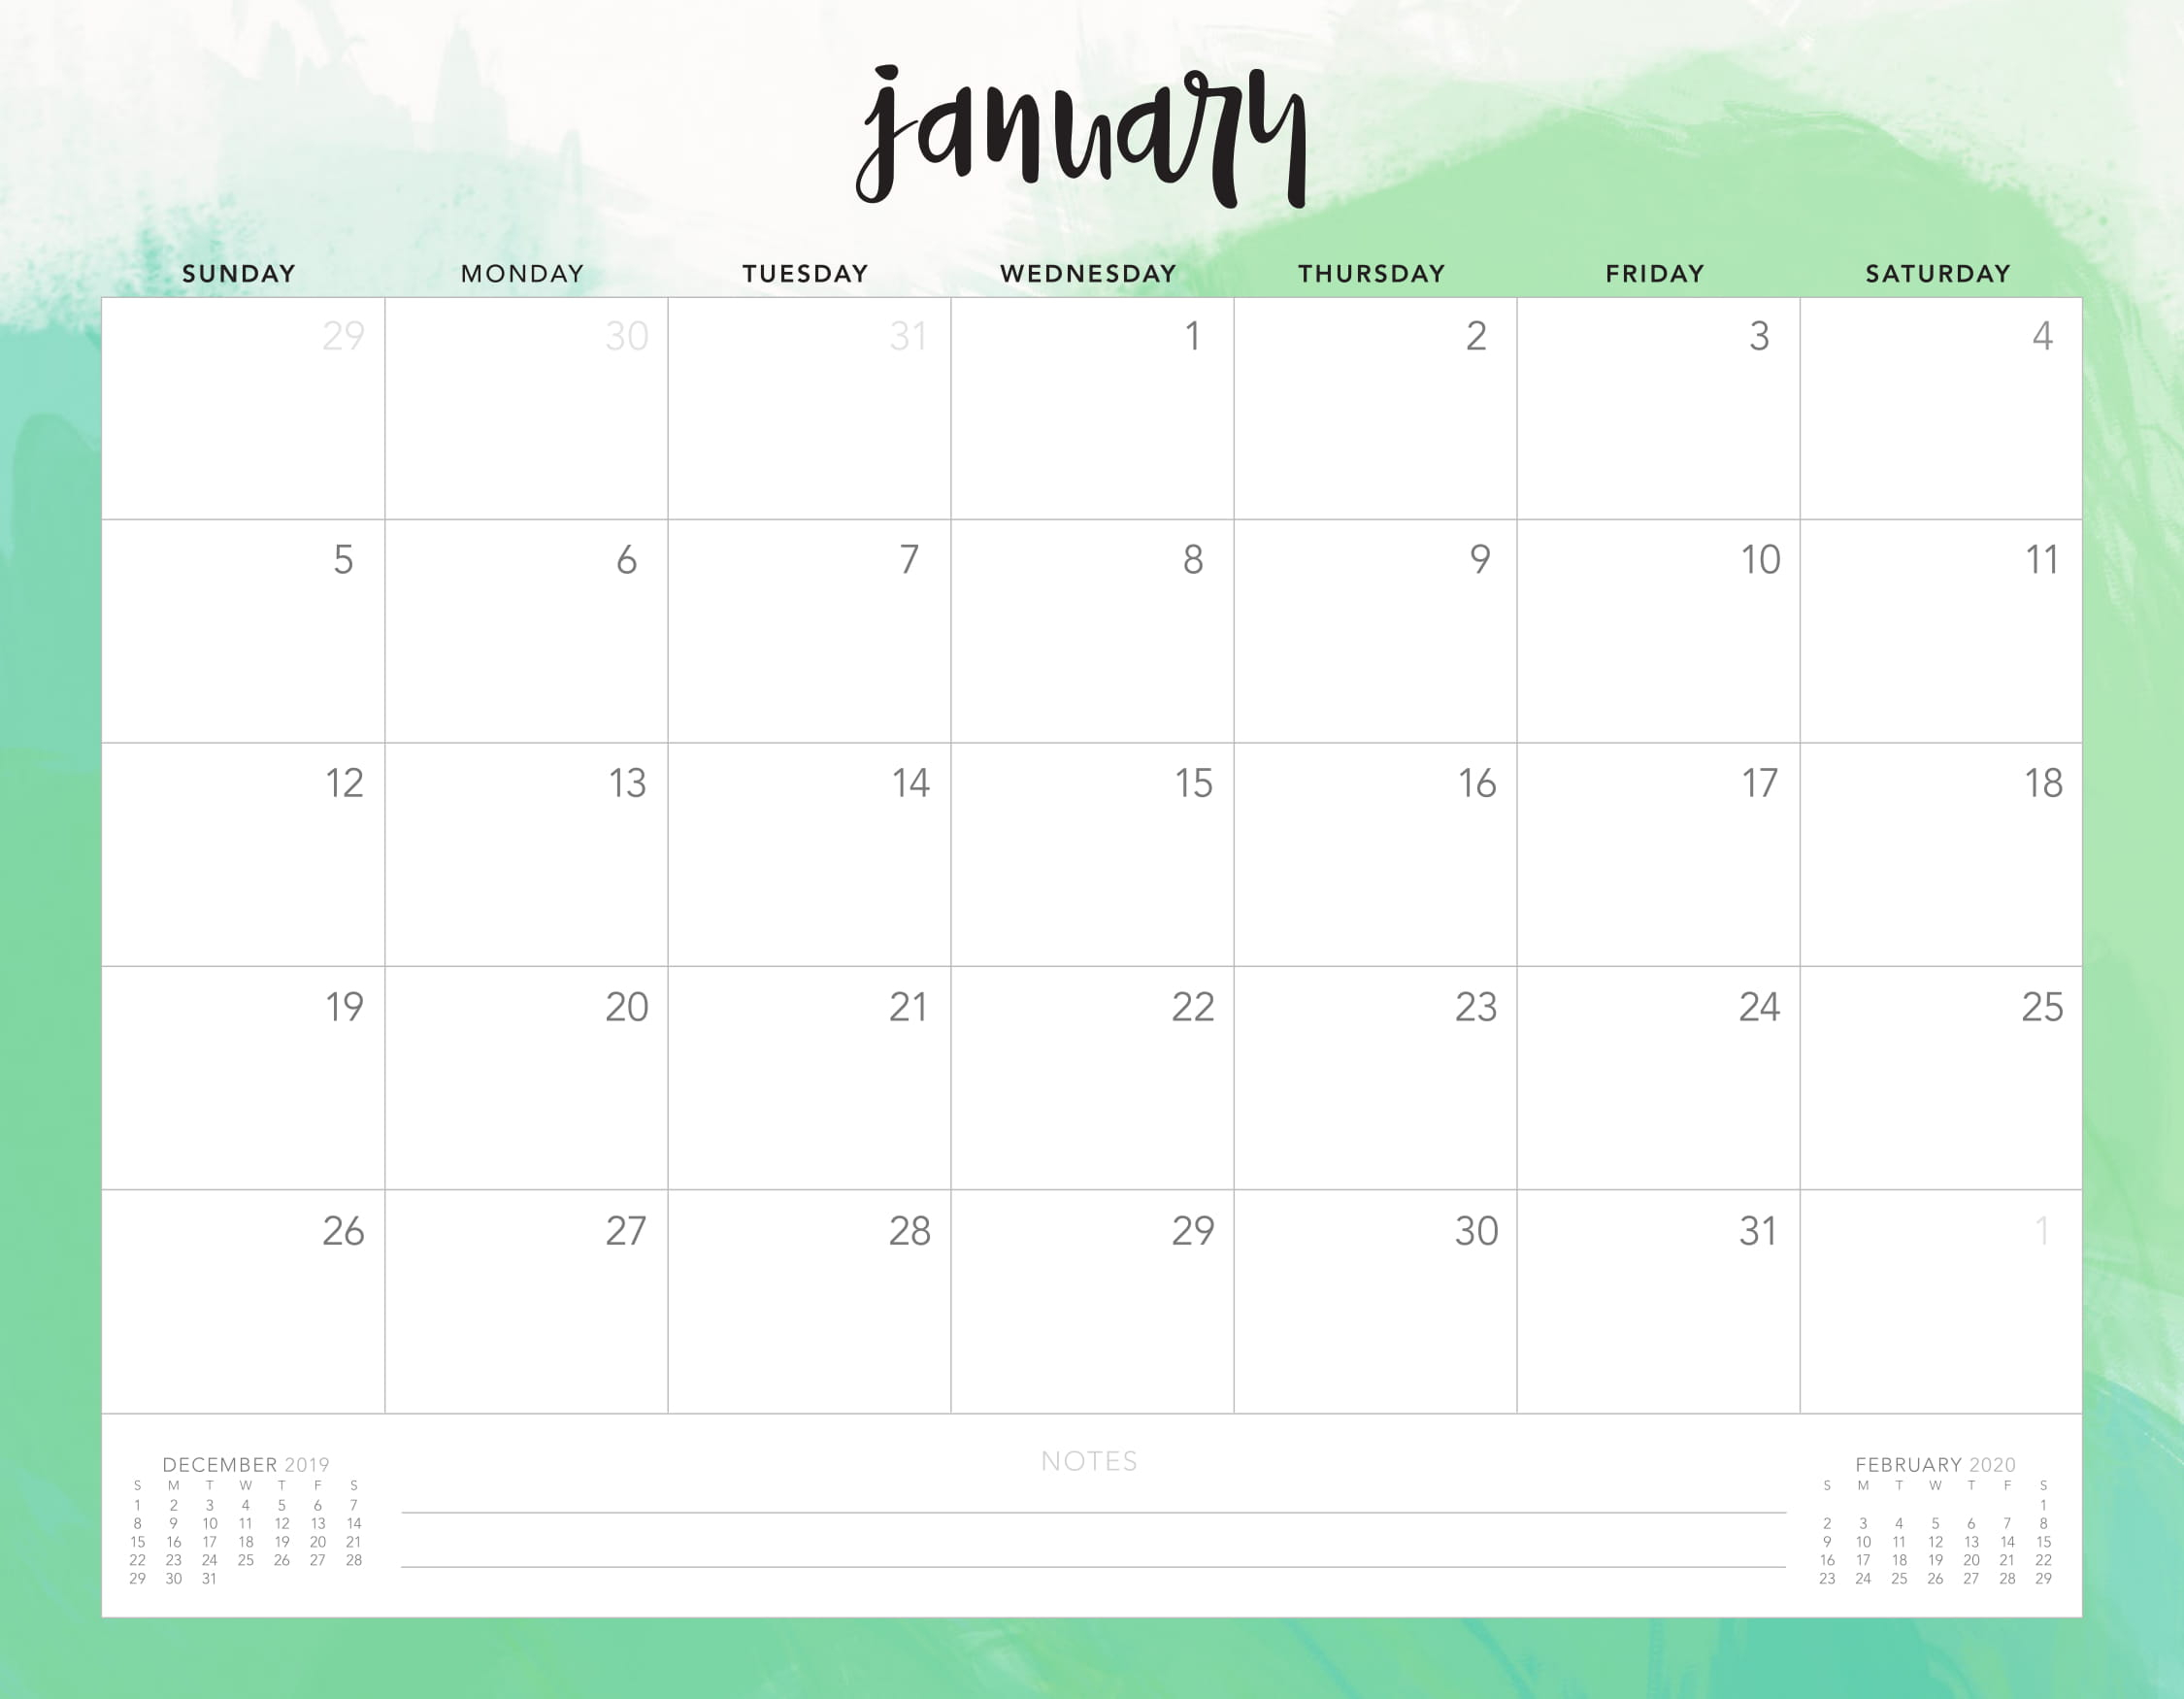 Online January 2020 Calendar Uk Holidays - 2019 Calendars